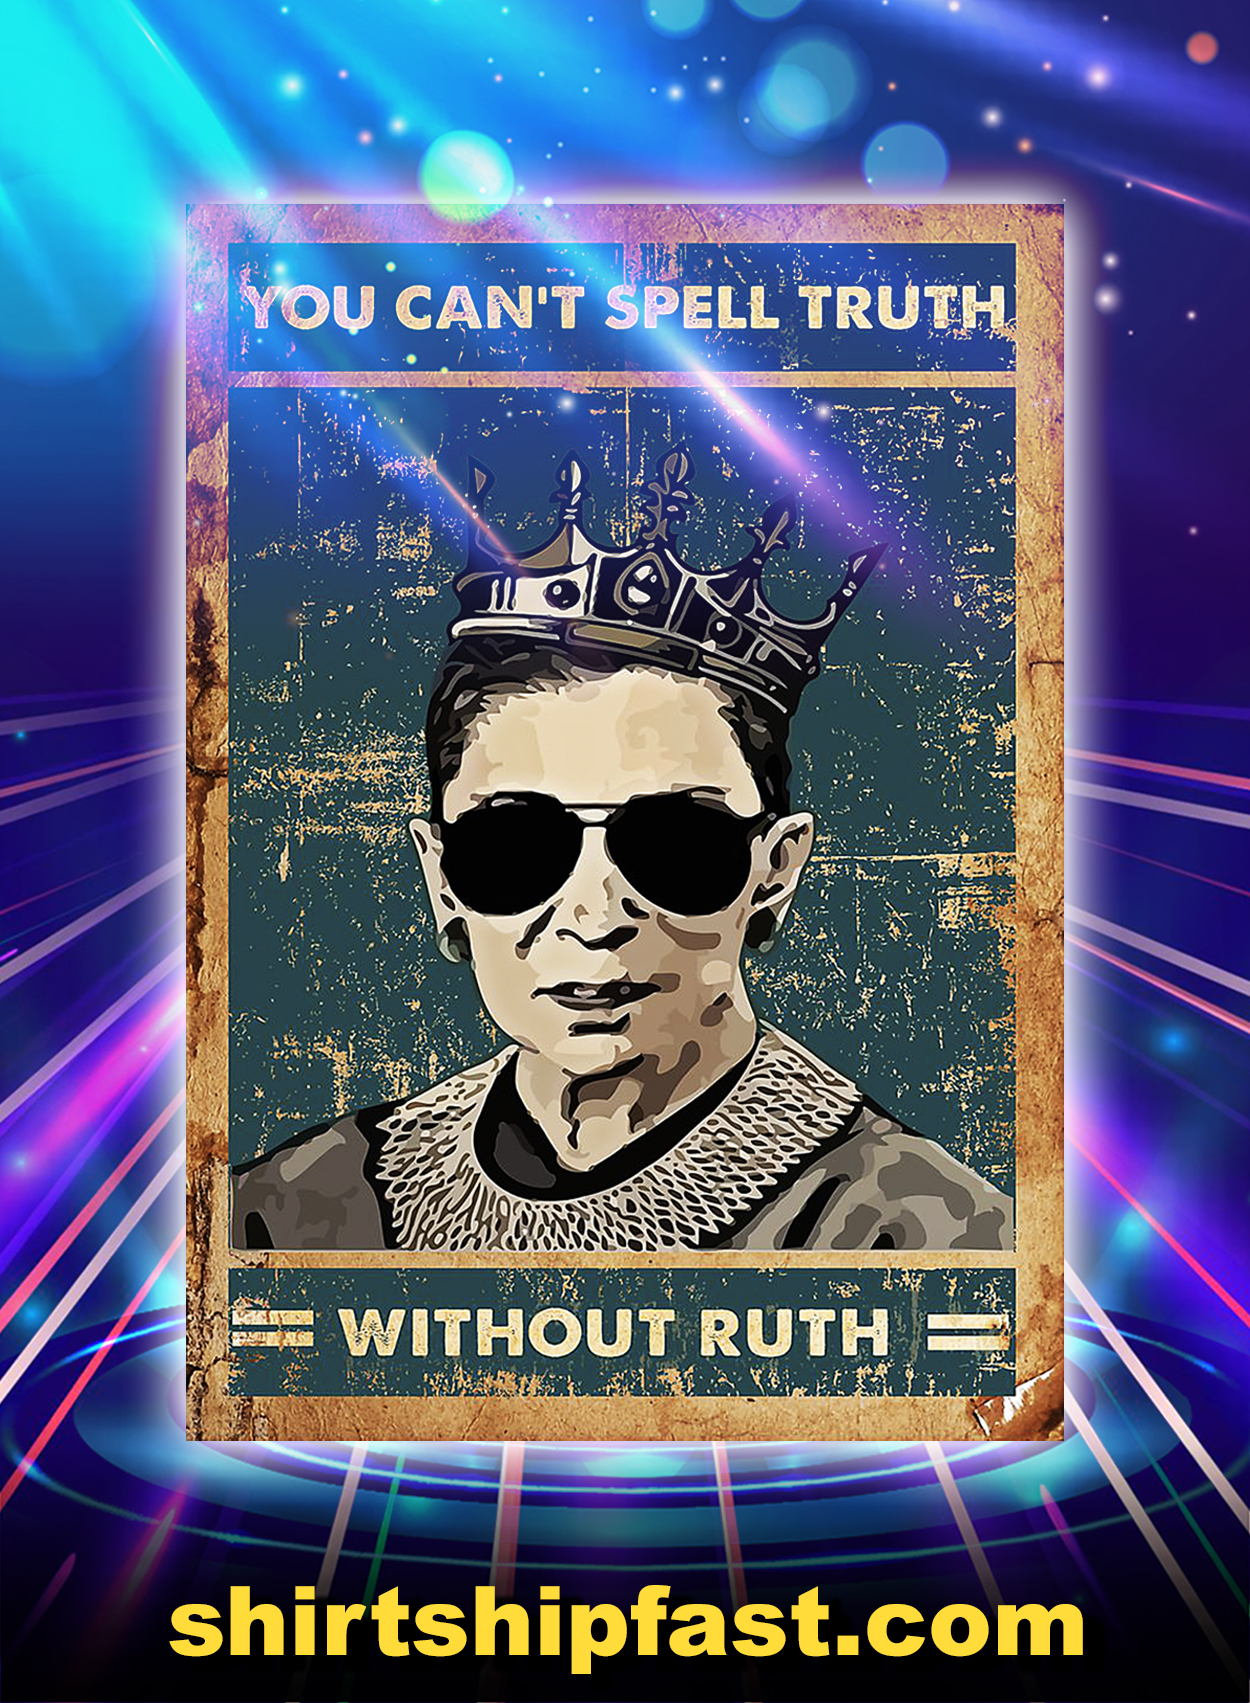 You can't spell truth without ruth poster - A3